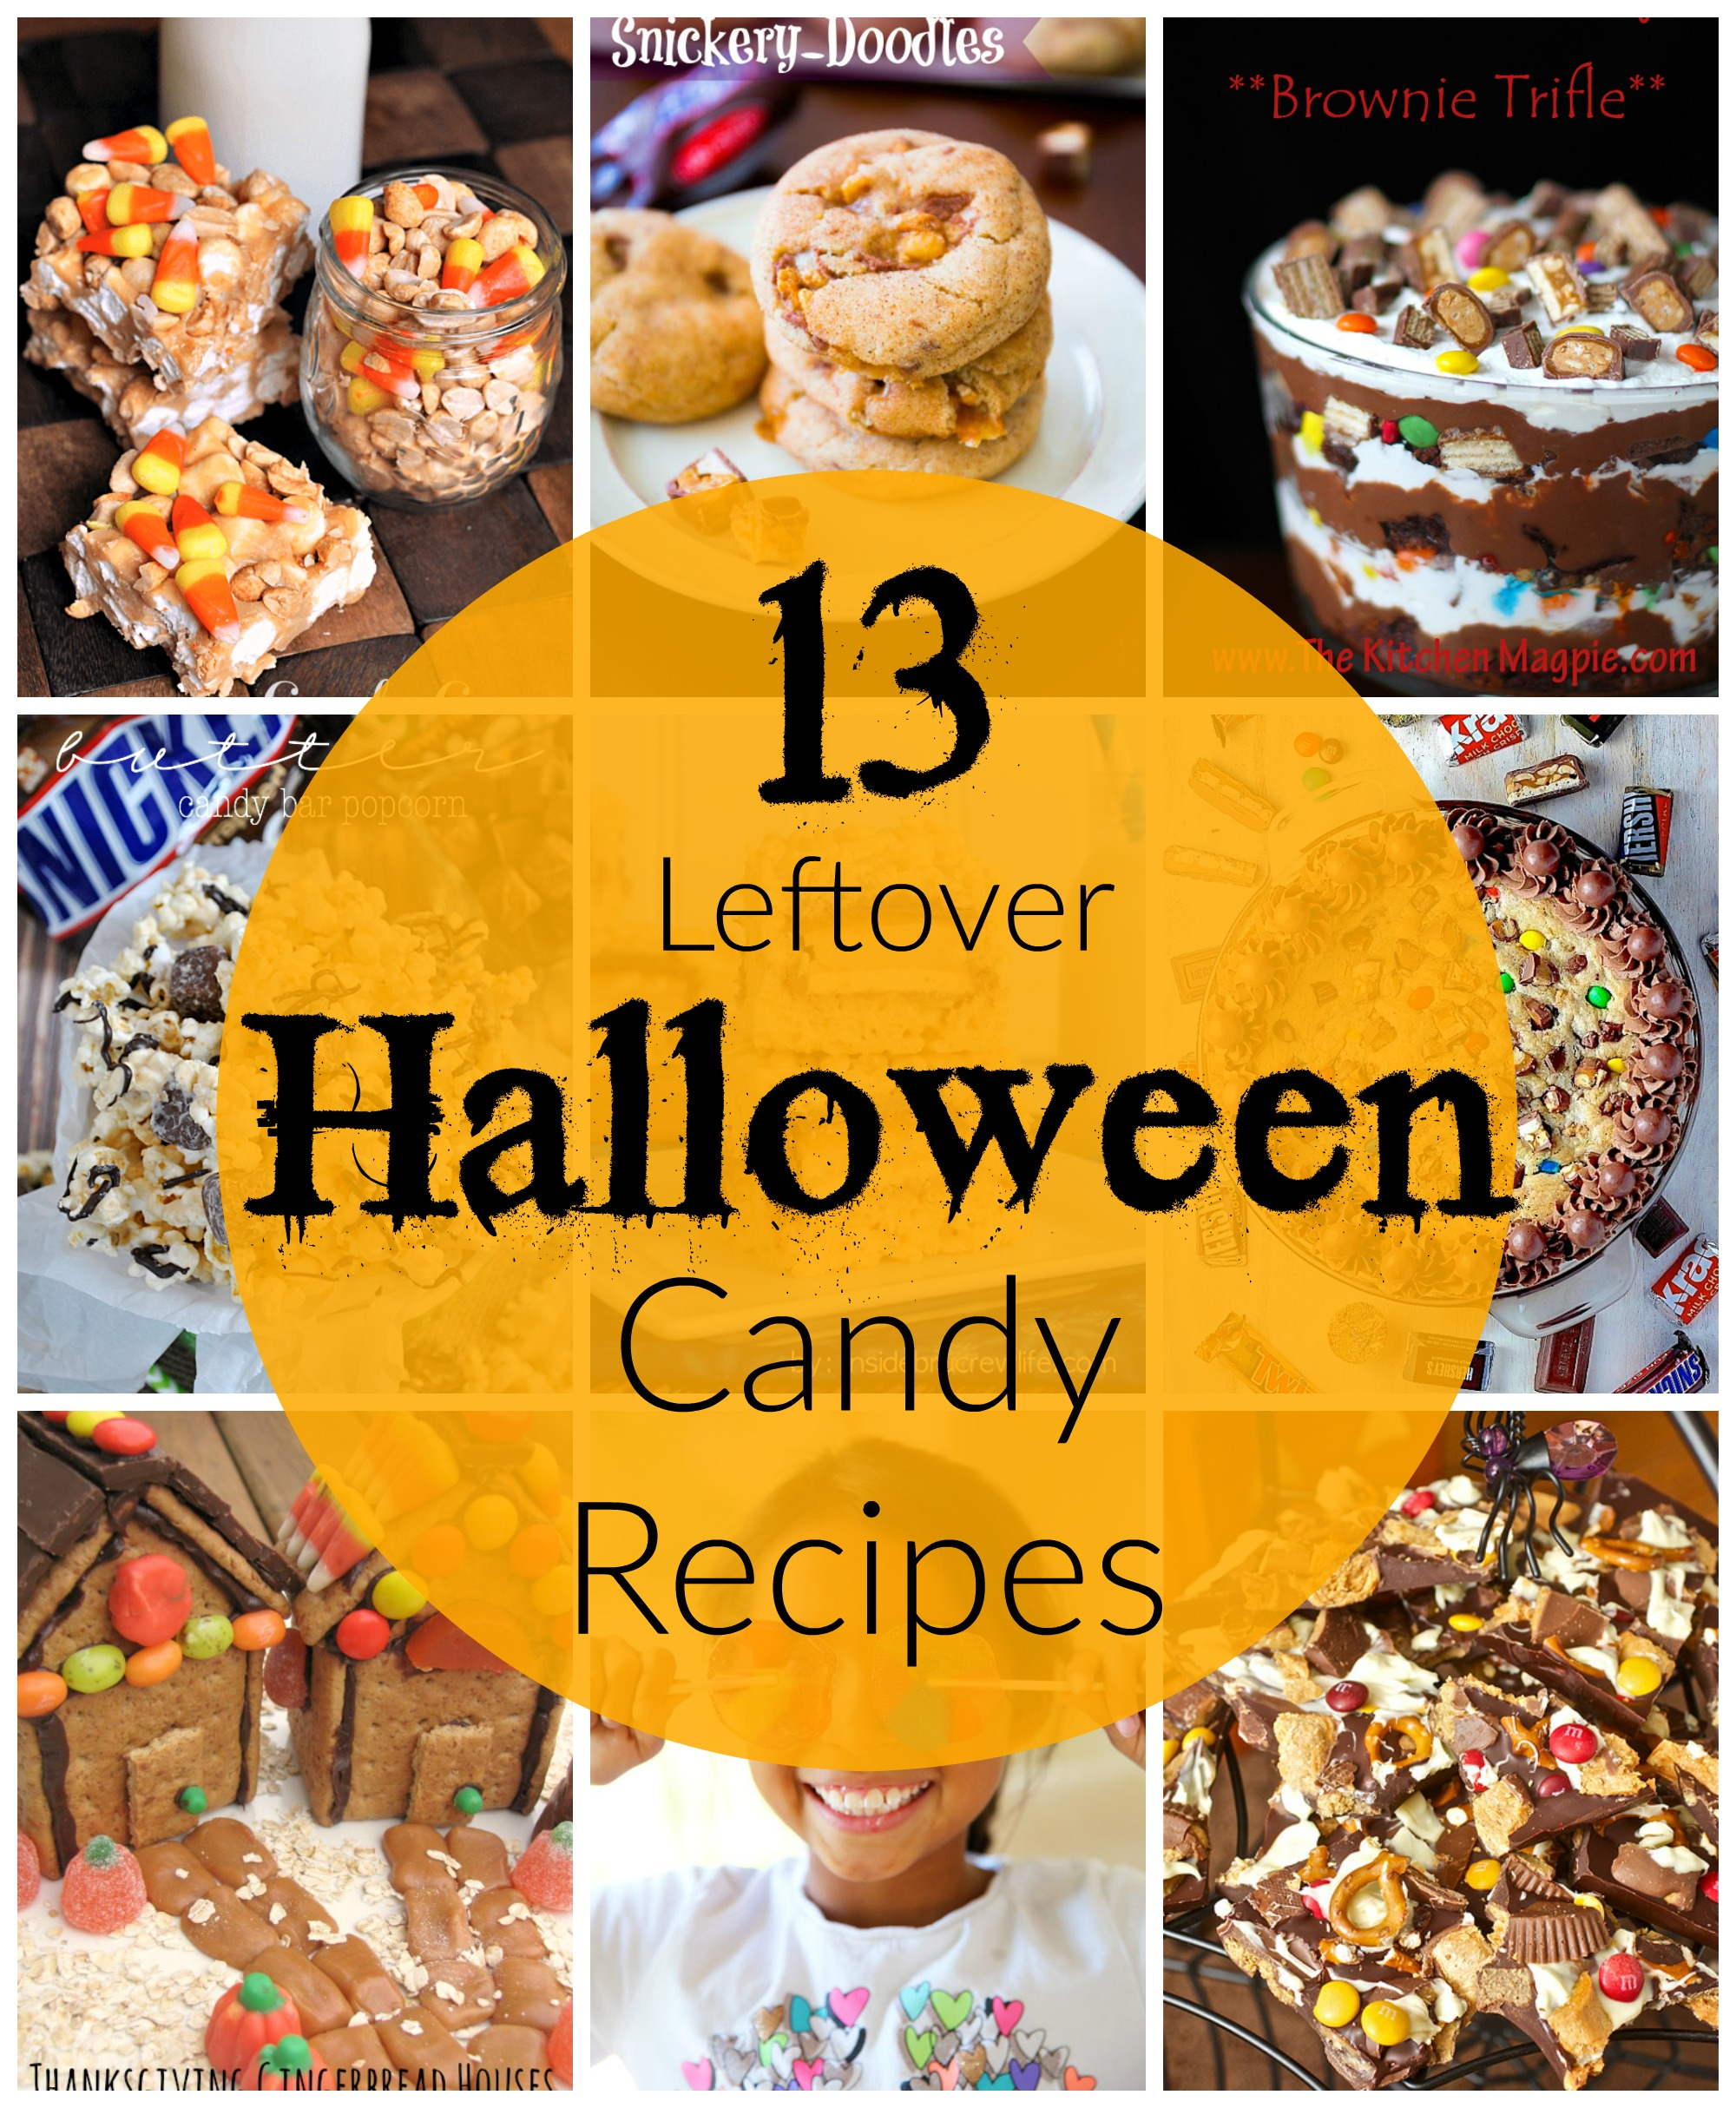 13 leftover halloween candy recipes | cookies, bars, & dips